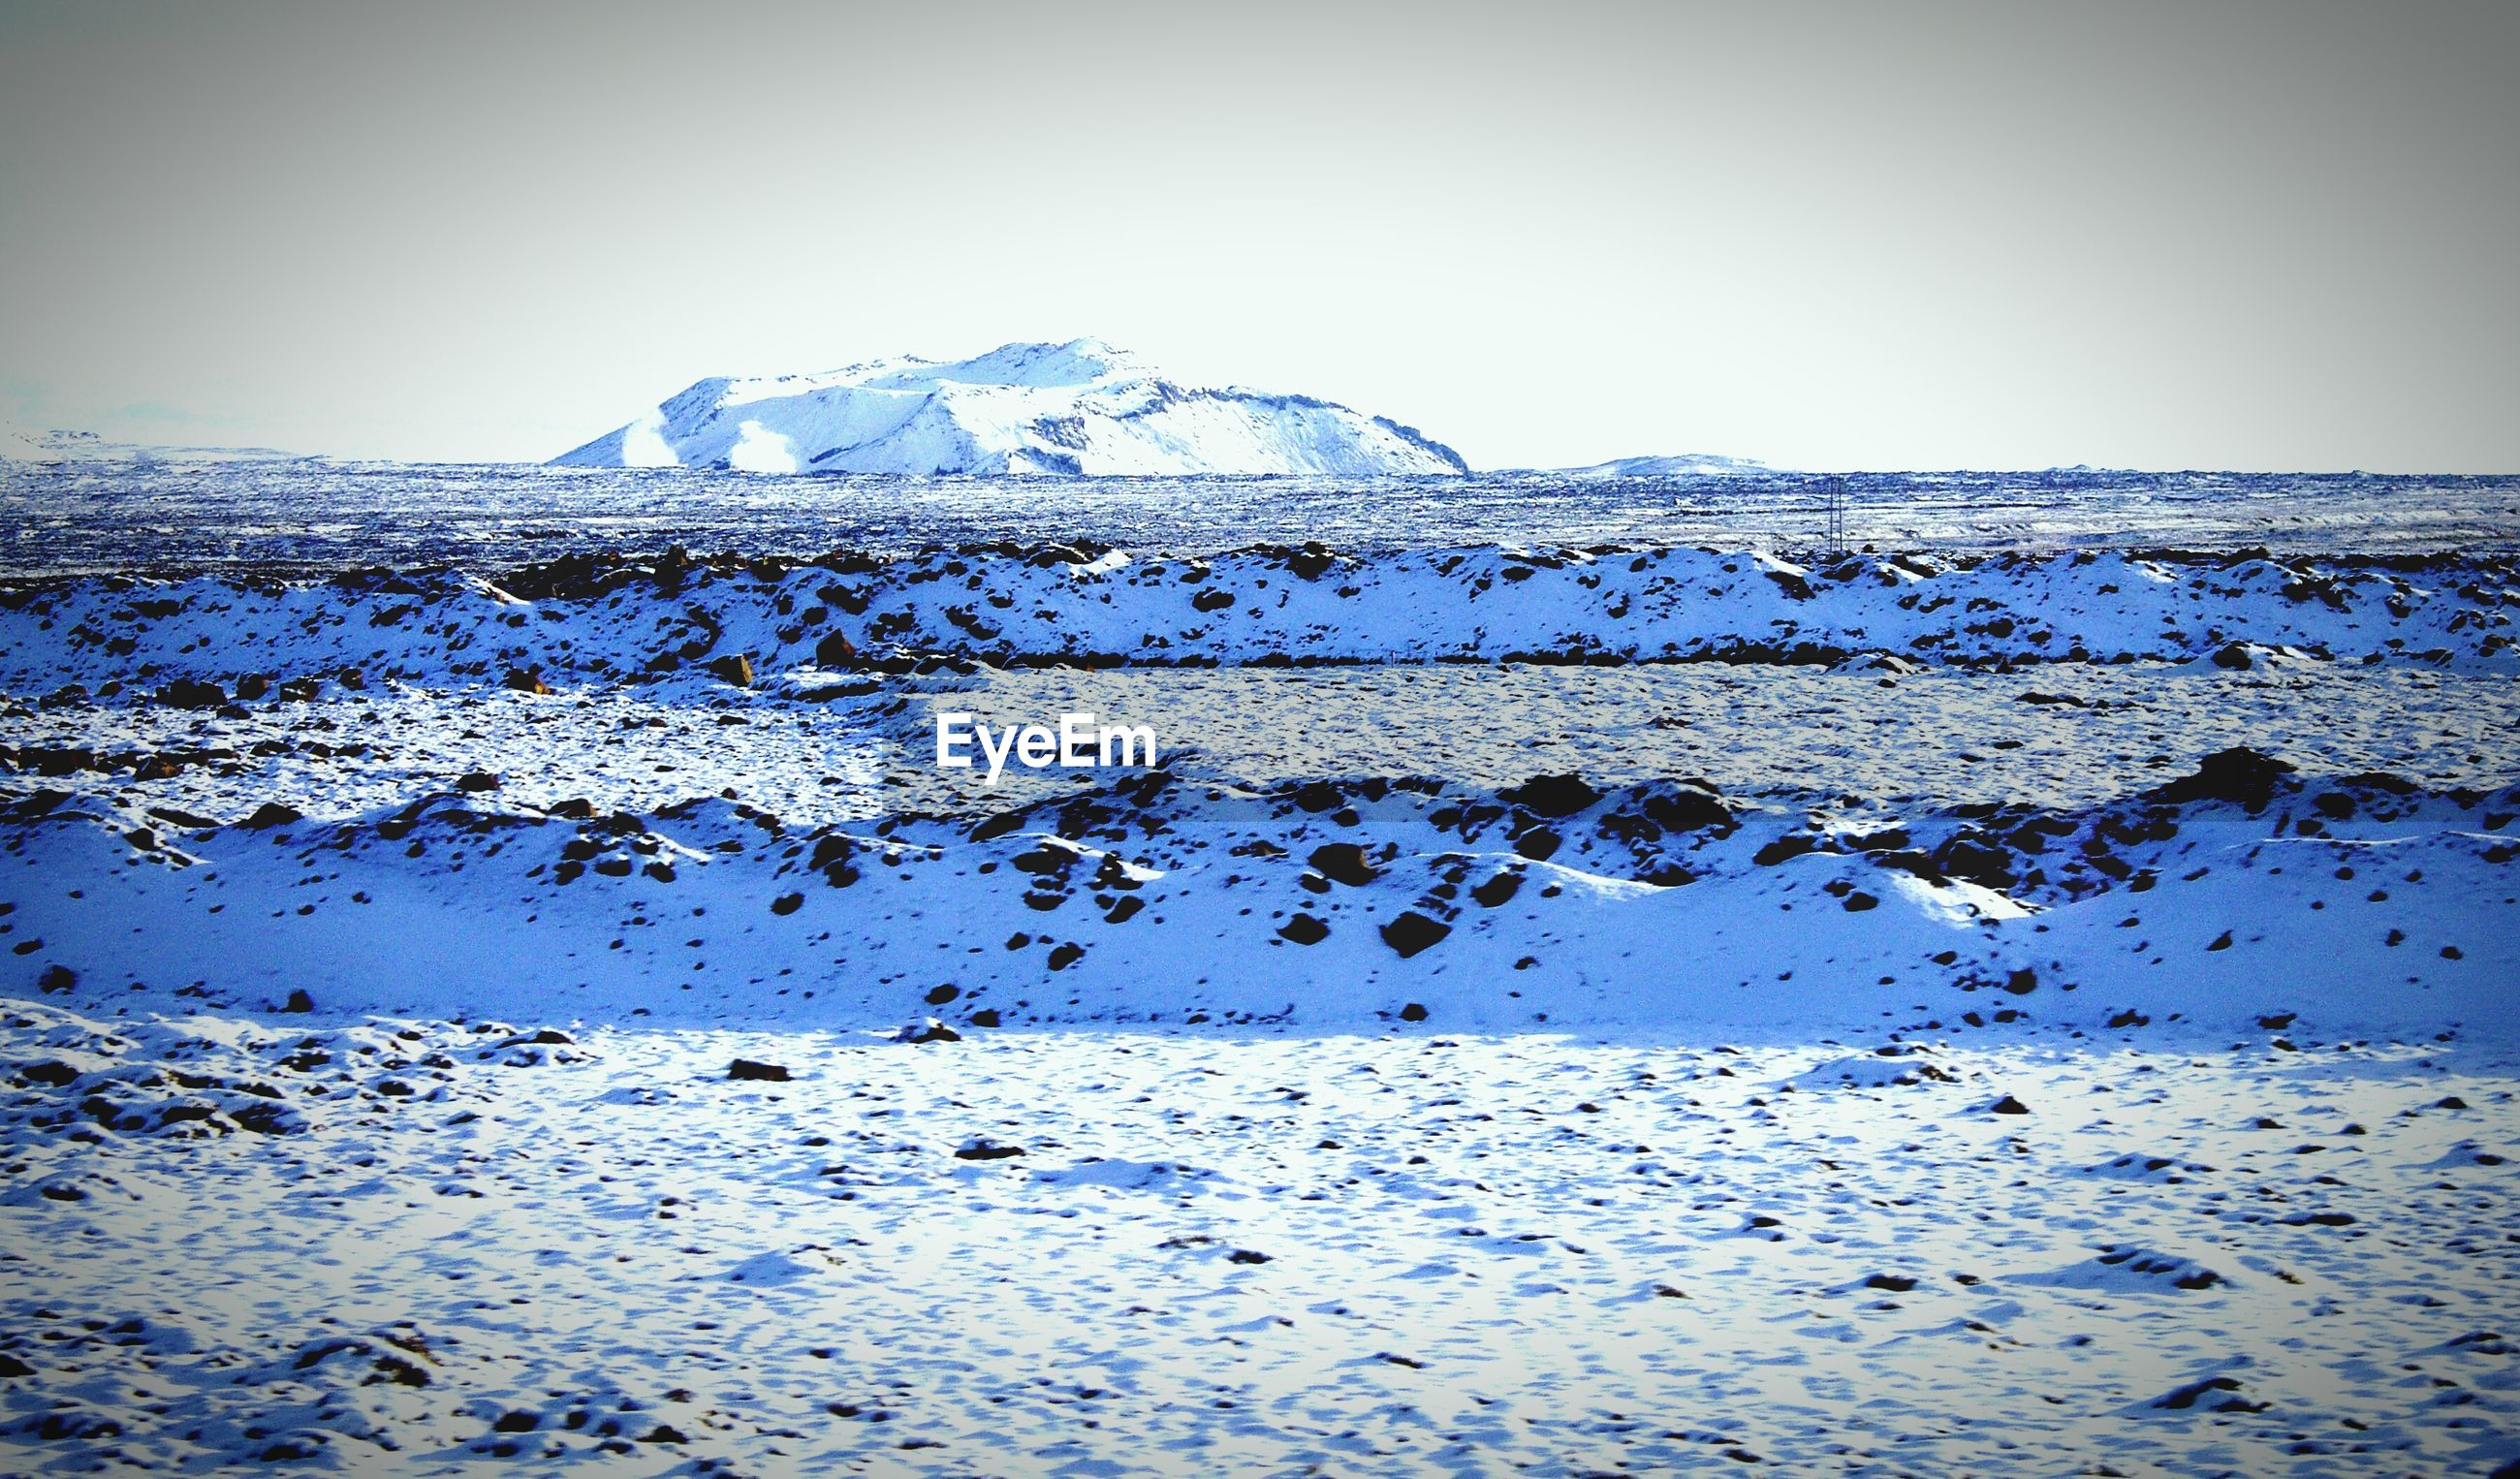 SCENIC VIEW OF SNOW ON MOUNTAIN AGAINST CLEAR SKY